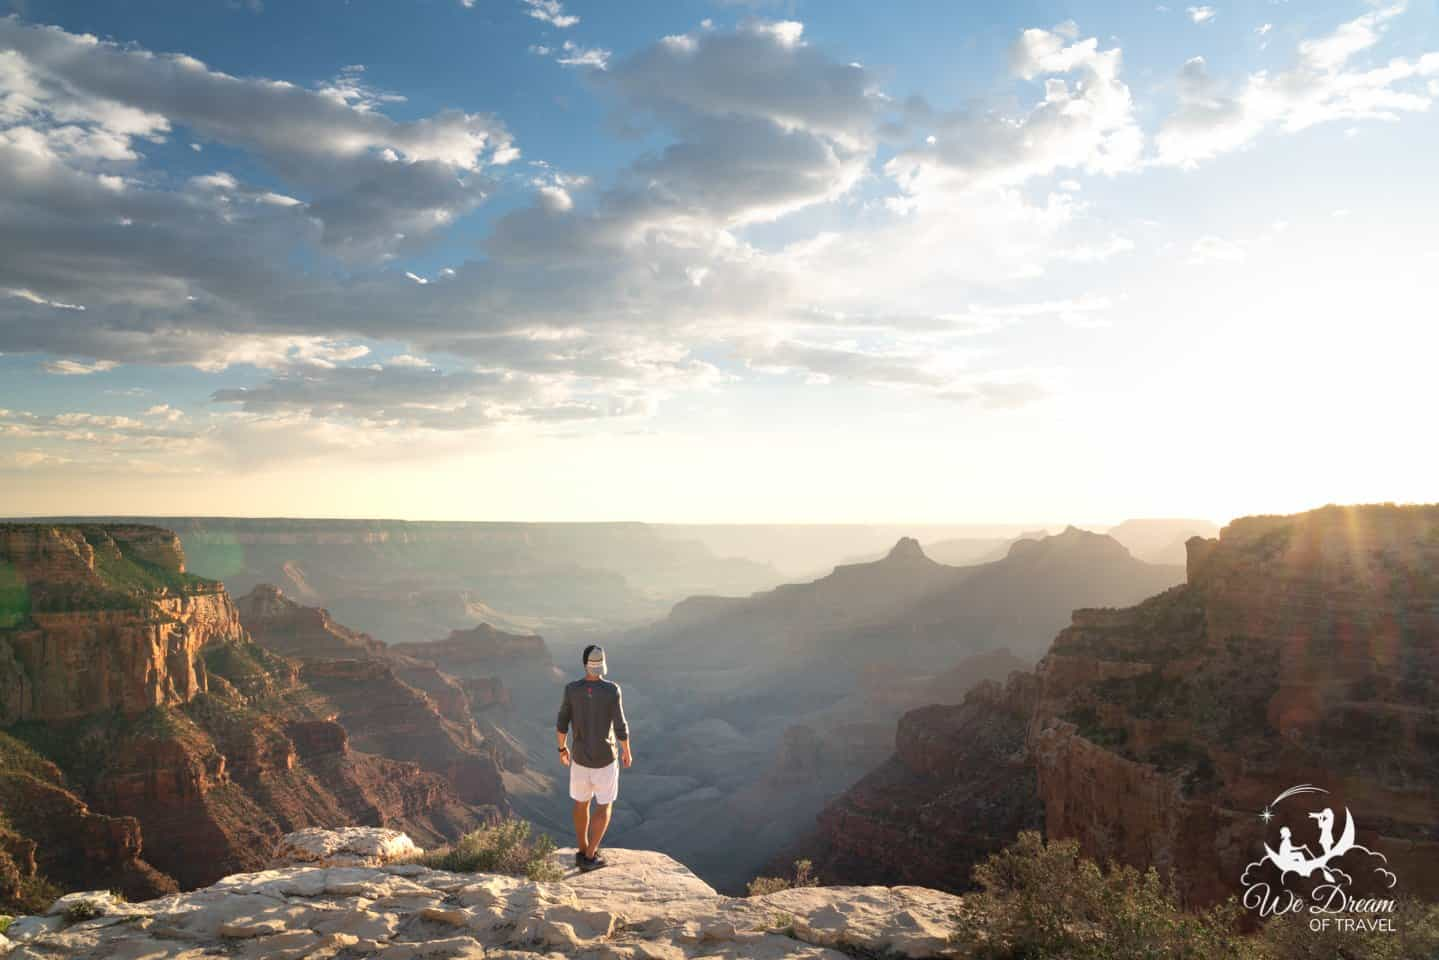 Watching sunset over the Grand Canyon from Cape Royal is a must!